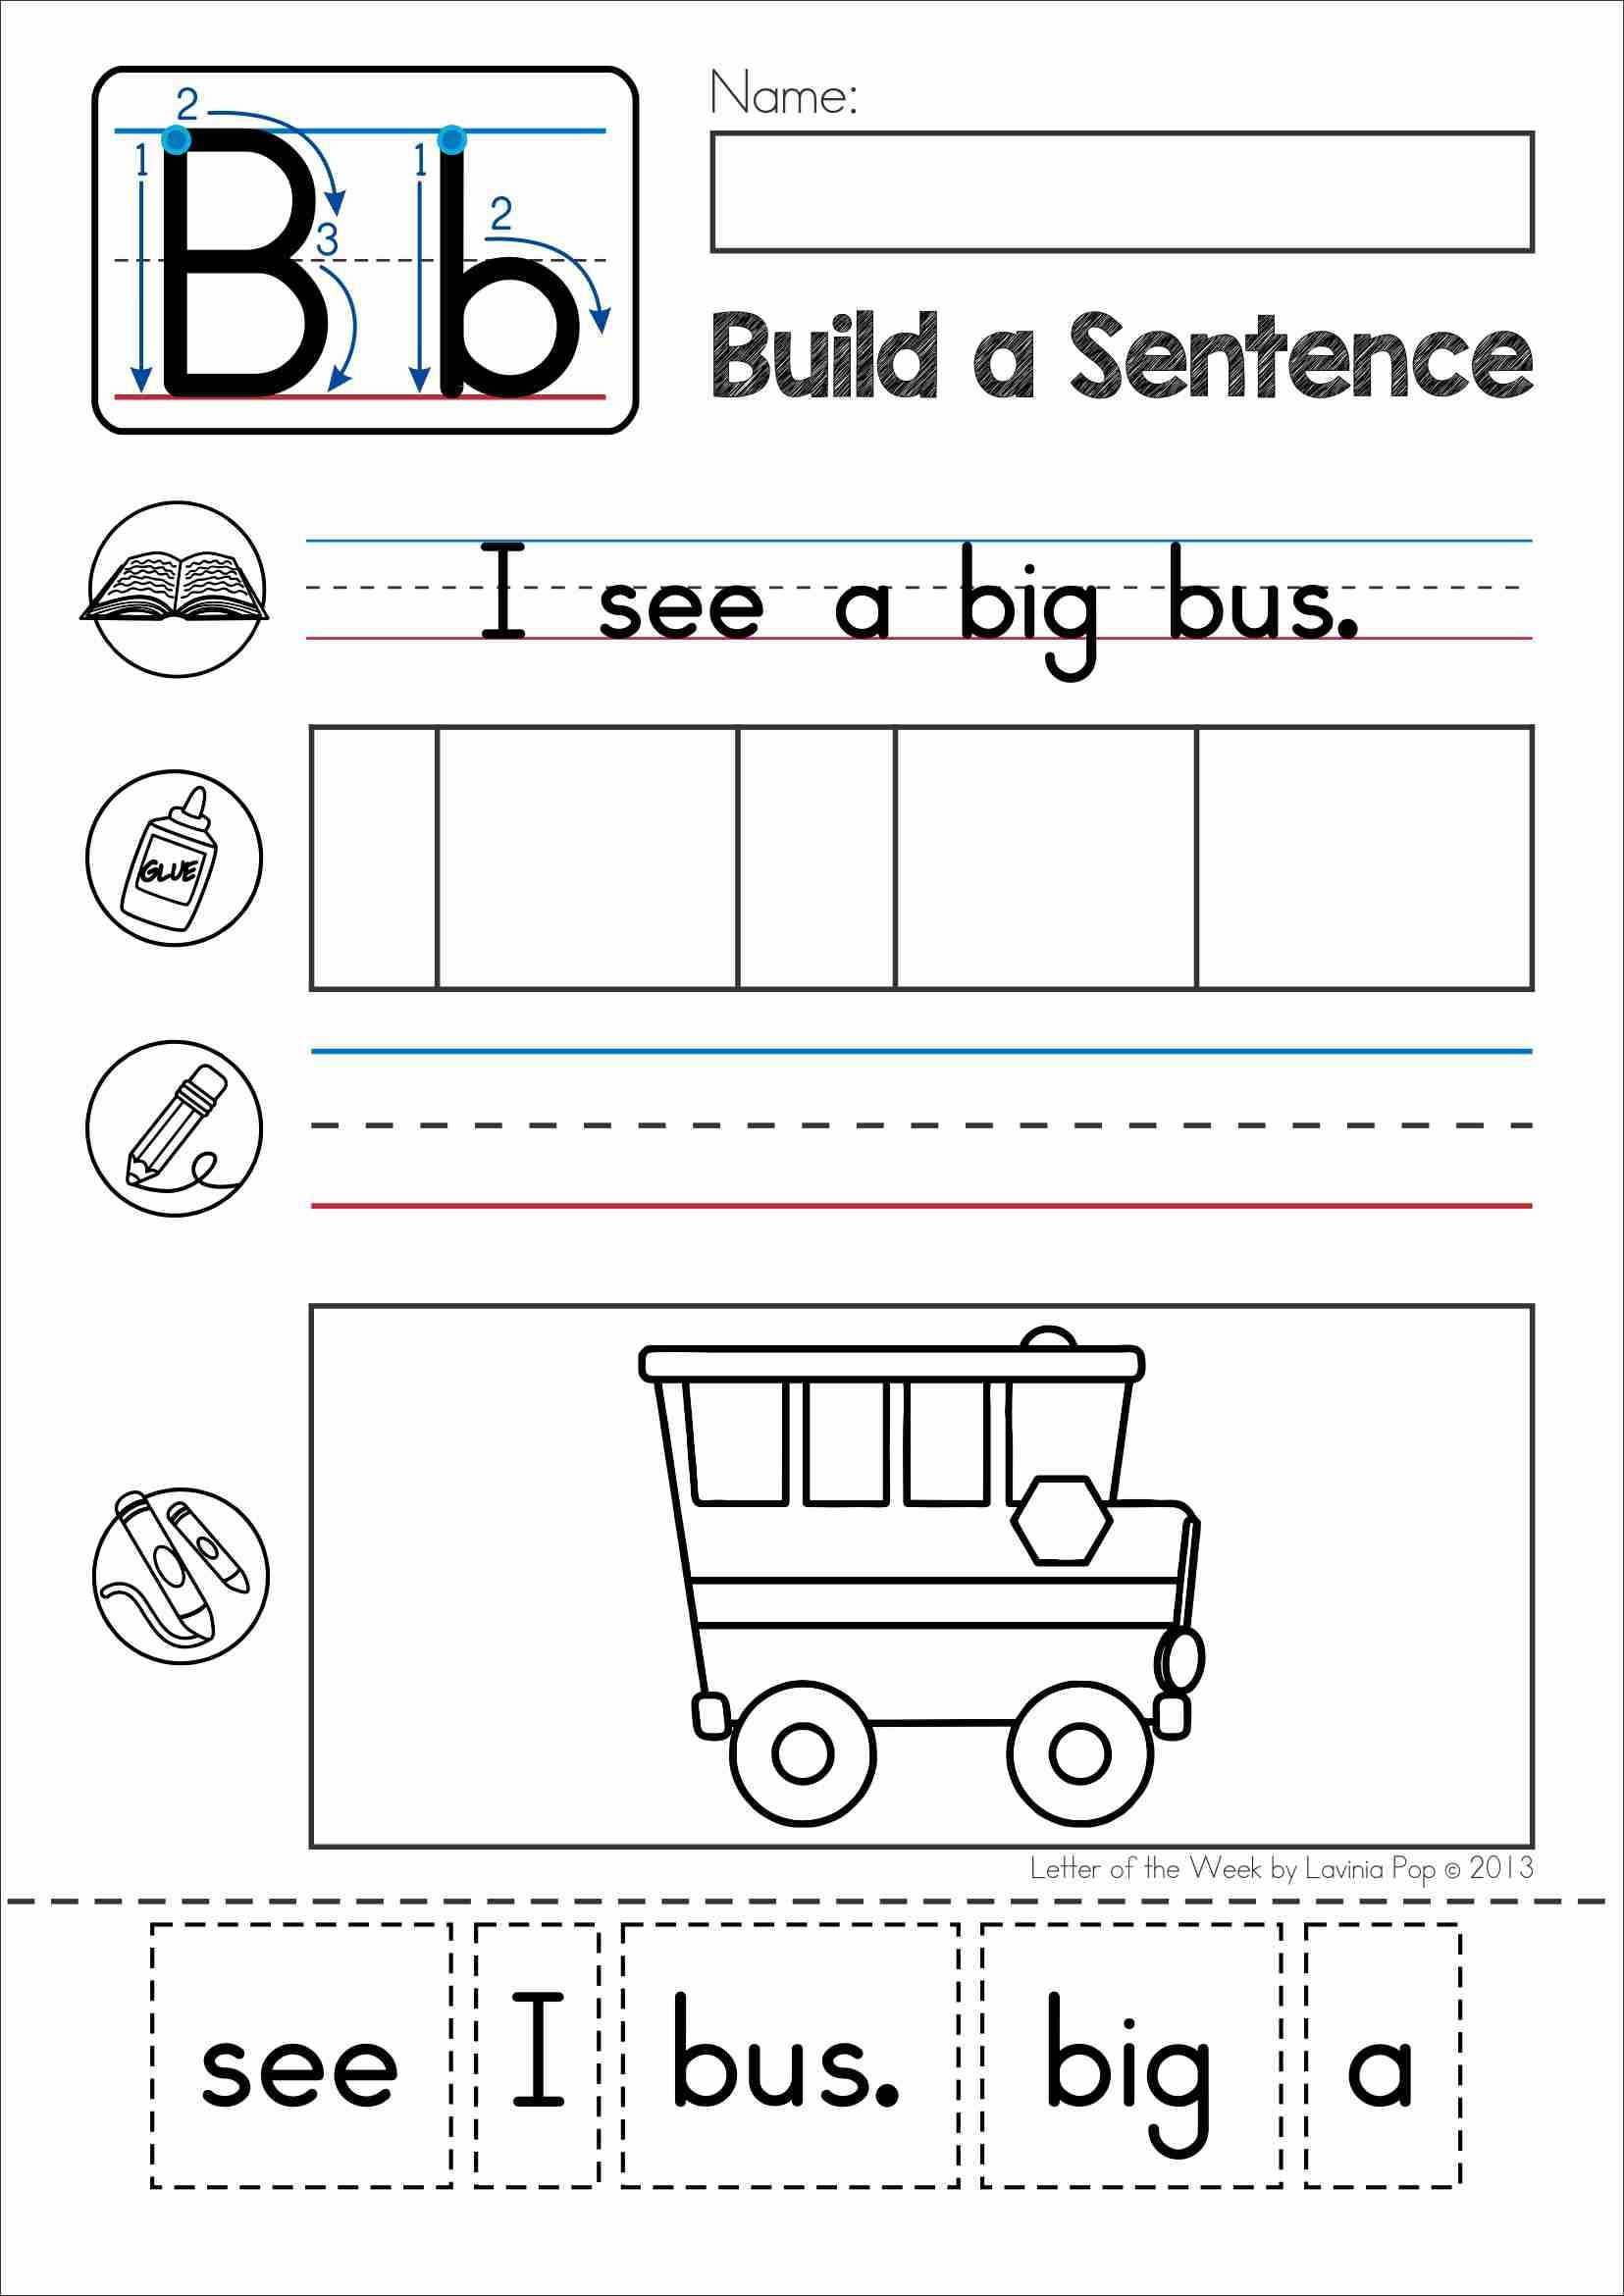 Phonics Letter Of The Week B Build A Sentence Cut And Paste Activity With Cvc Words For